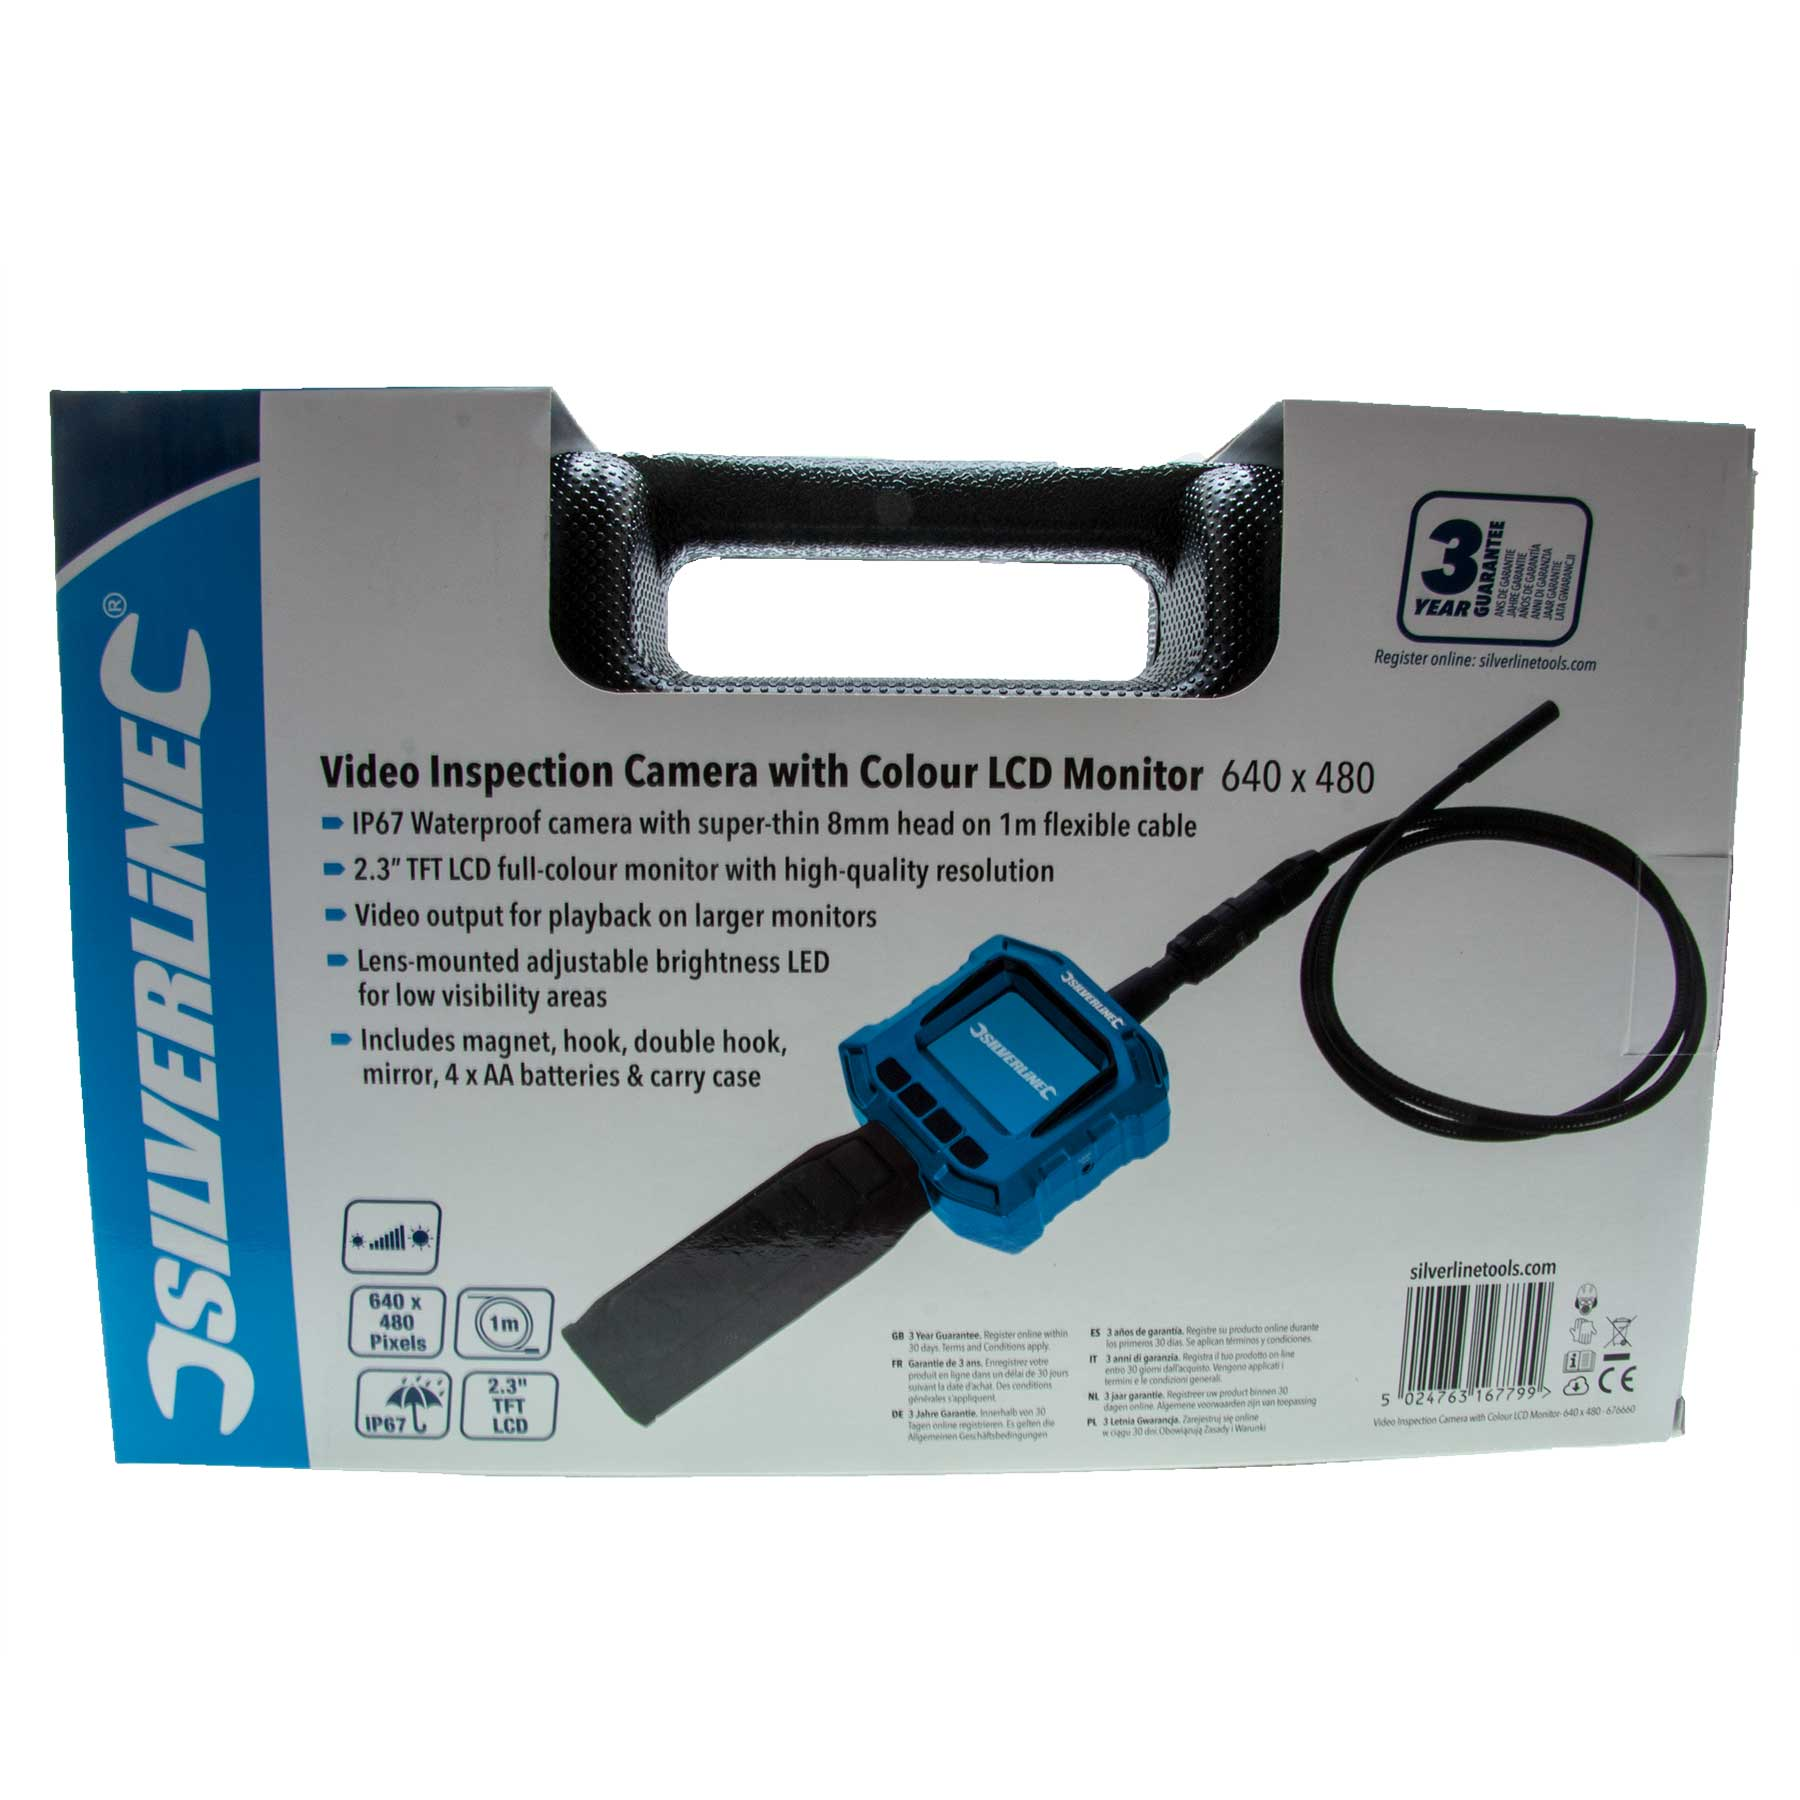 Silverline Video Inspection Camera With Colour LCD Monitor 640 X 480